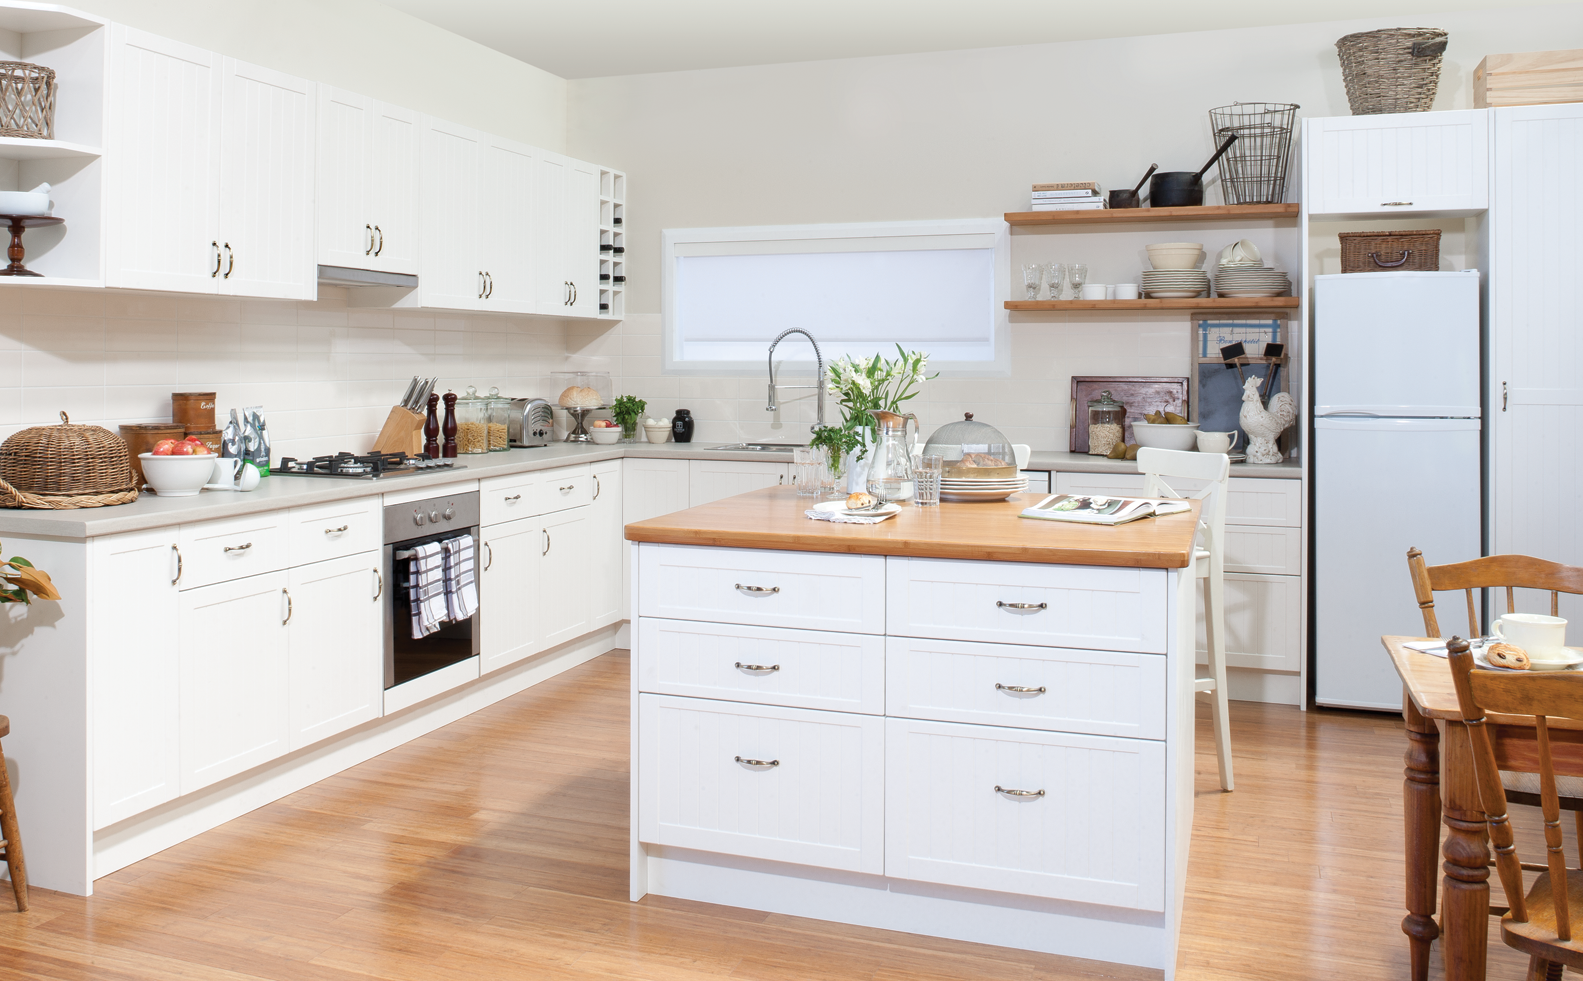 city meets country kitchen inspiration package at bunnings warehouse kitchen inspirations on kaboodle kitchen storage id=13488